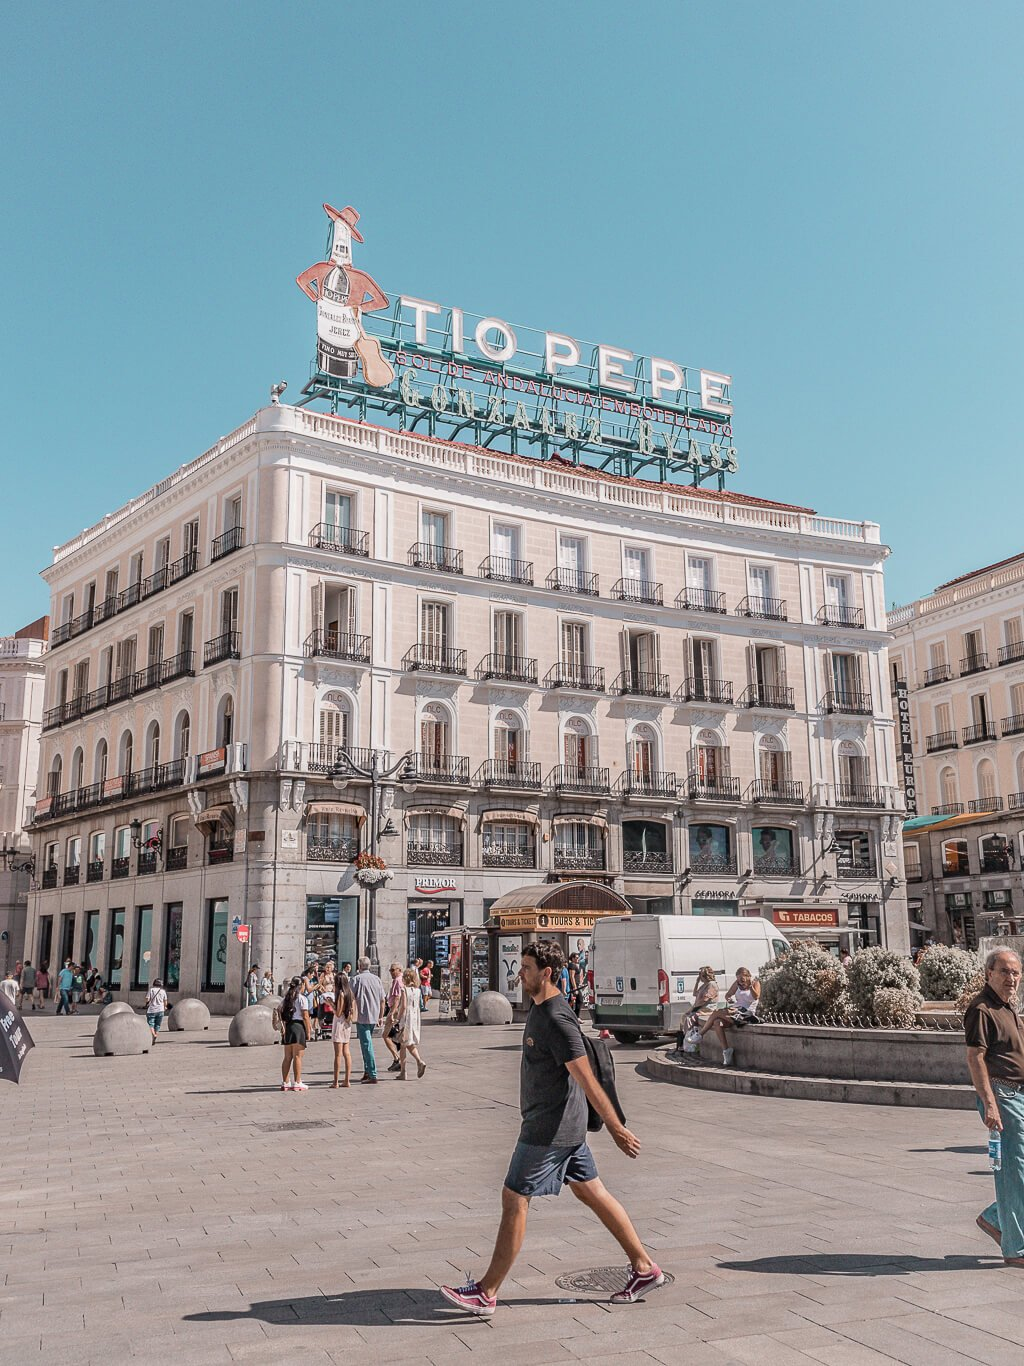 A Guide For Planning A Trip To Madrid - Things to do in the Spanish capital {4 day itinerary, including food & restaurants tips, shopping and sightseeing} | מדריך טיול למדריד - מה יש לעשות במדריד | שופינג במדריד